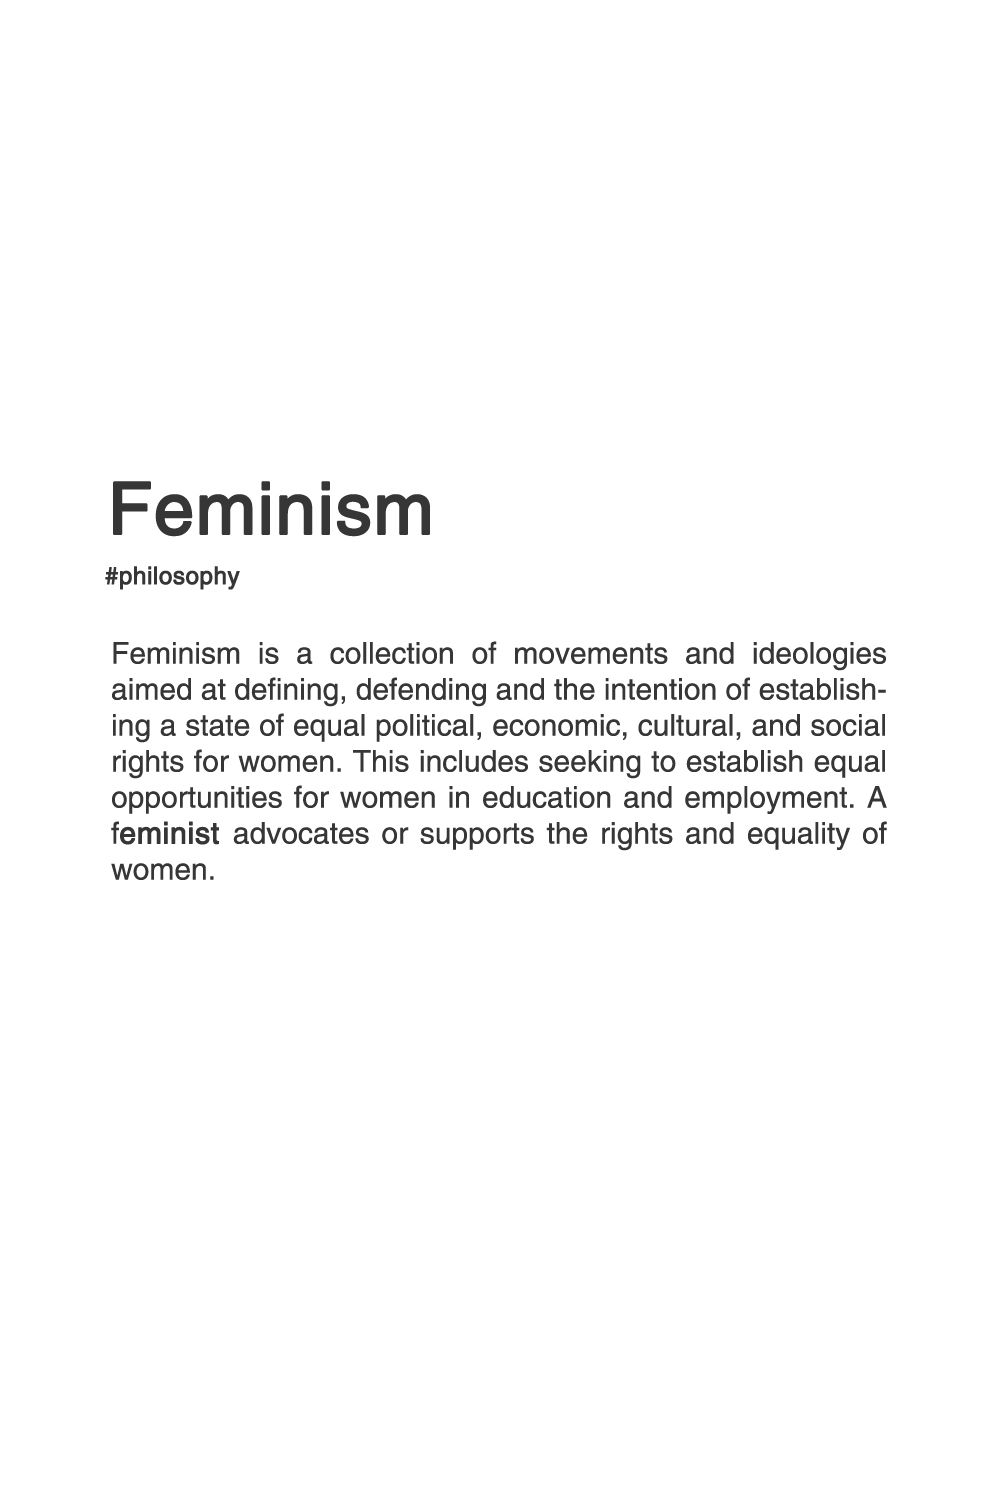 rape culture oriented feminism sociology essay He wrote that men and women experience rape culture in exactly the same way, and claimed talking about gender inequality was just an effort to make men look bad he said that women brought these things upon themselves by making people, and specifically men, angry and annoyed via conversations about feminism and rape culture.